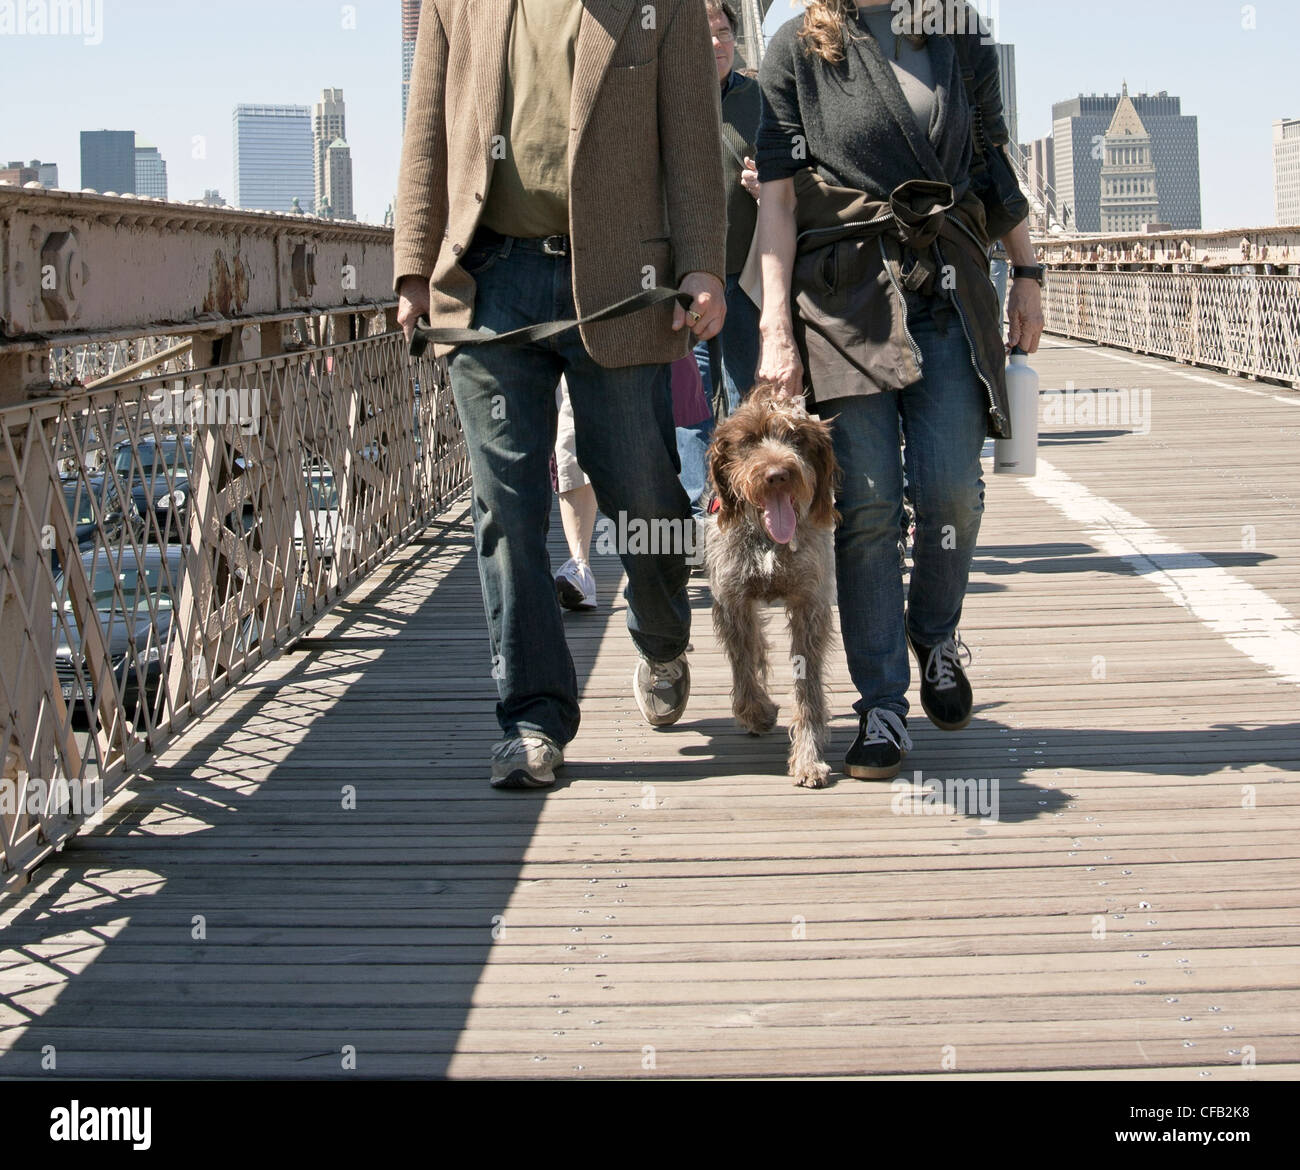 A couple walk their dog across the Brooklyn Bridge in New York City on a sunny afternoon. - Stock Image